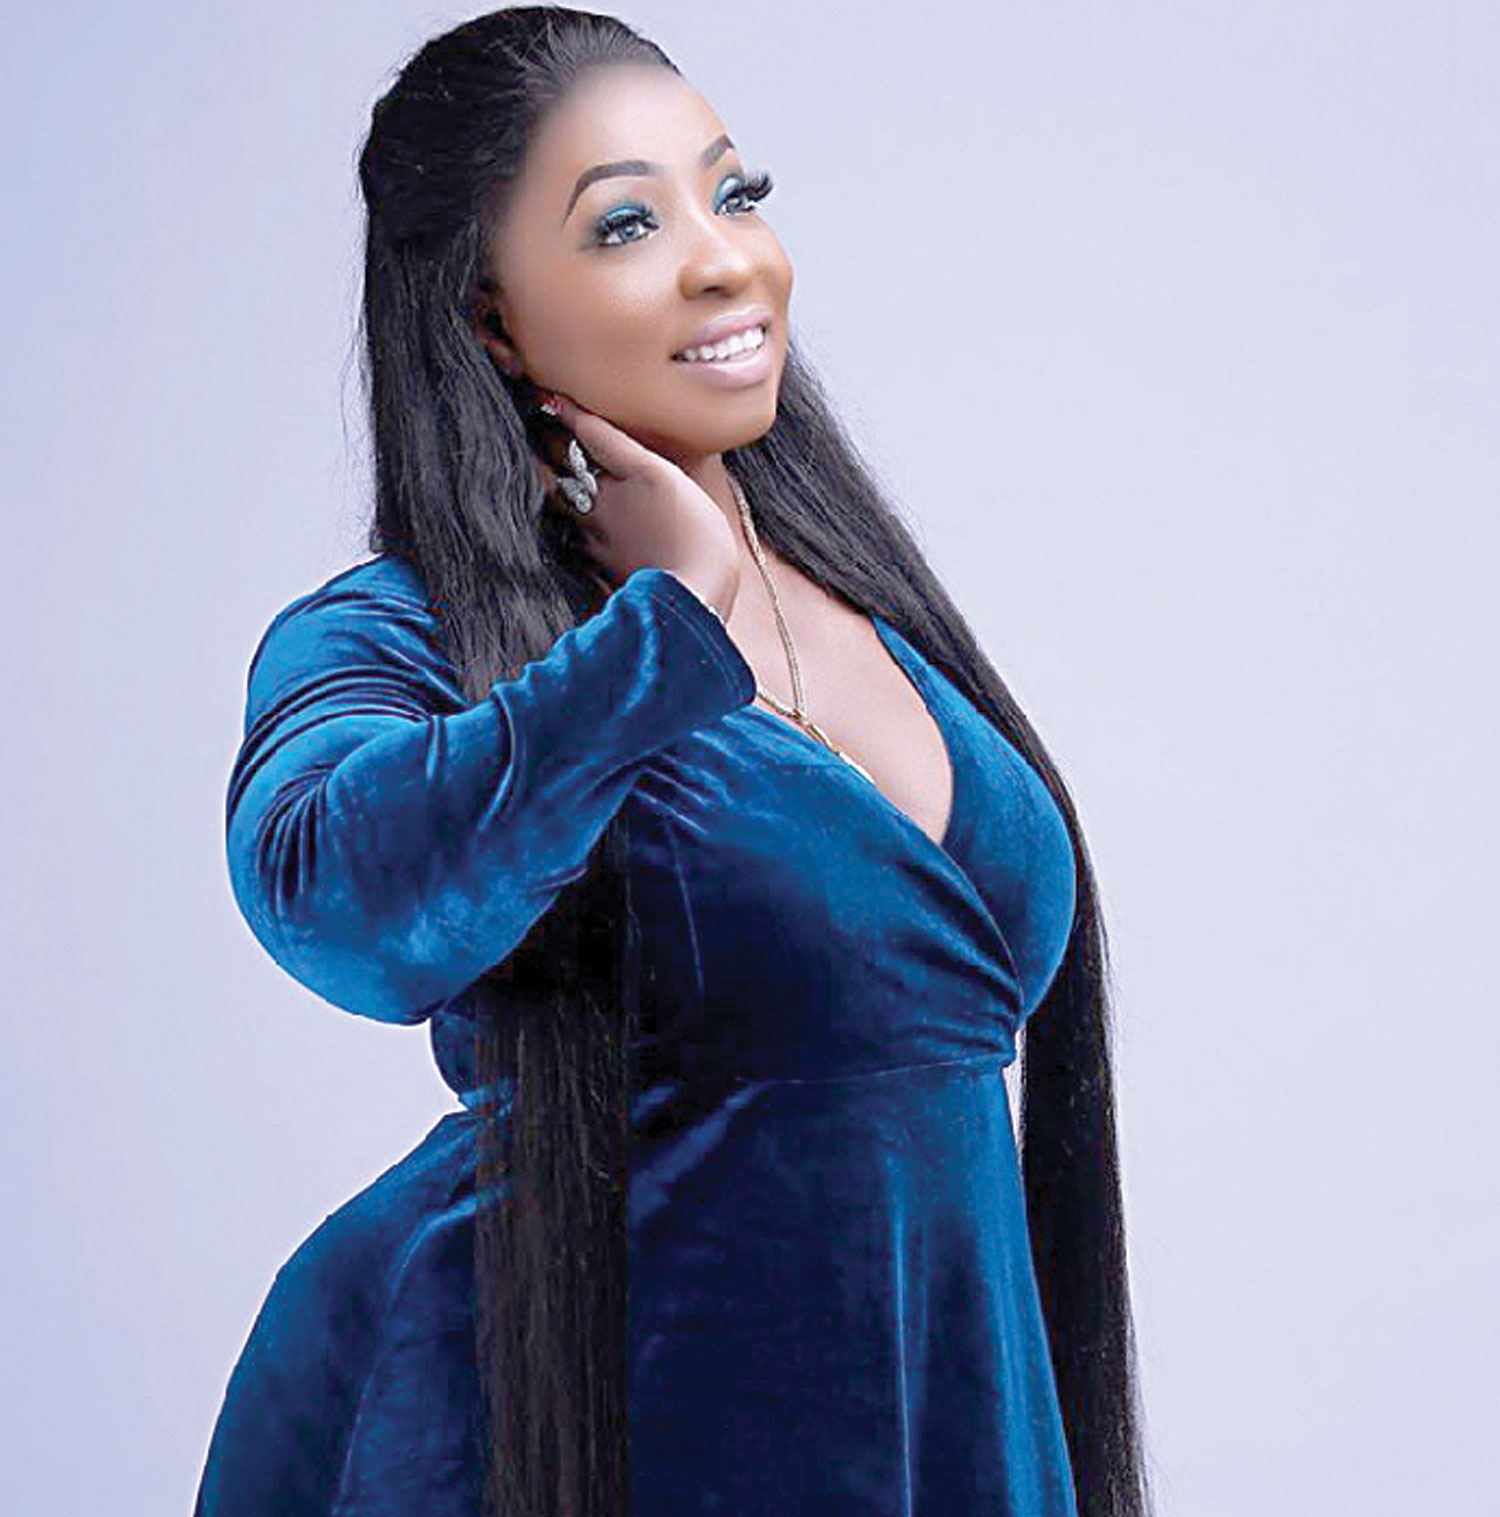 I Willl Stop Twerking Videos Because My Hubby Doesn't Like Them' – Nollywood Actress, Anita Joseph